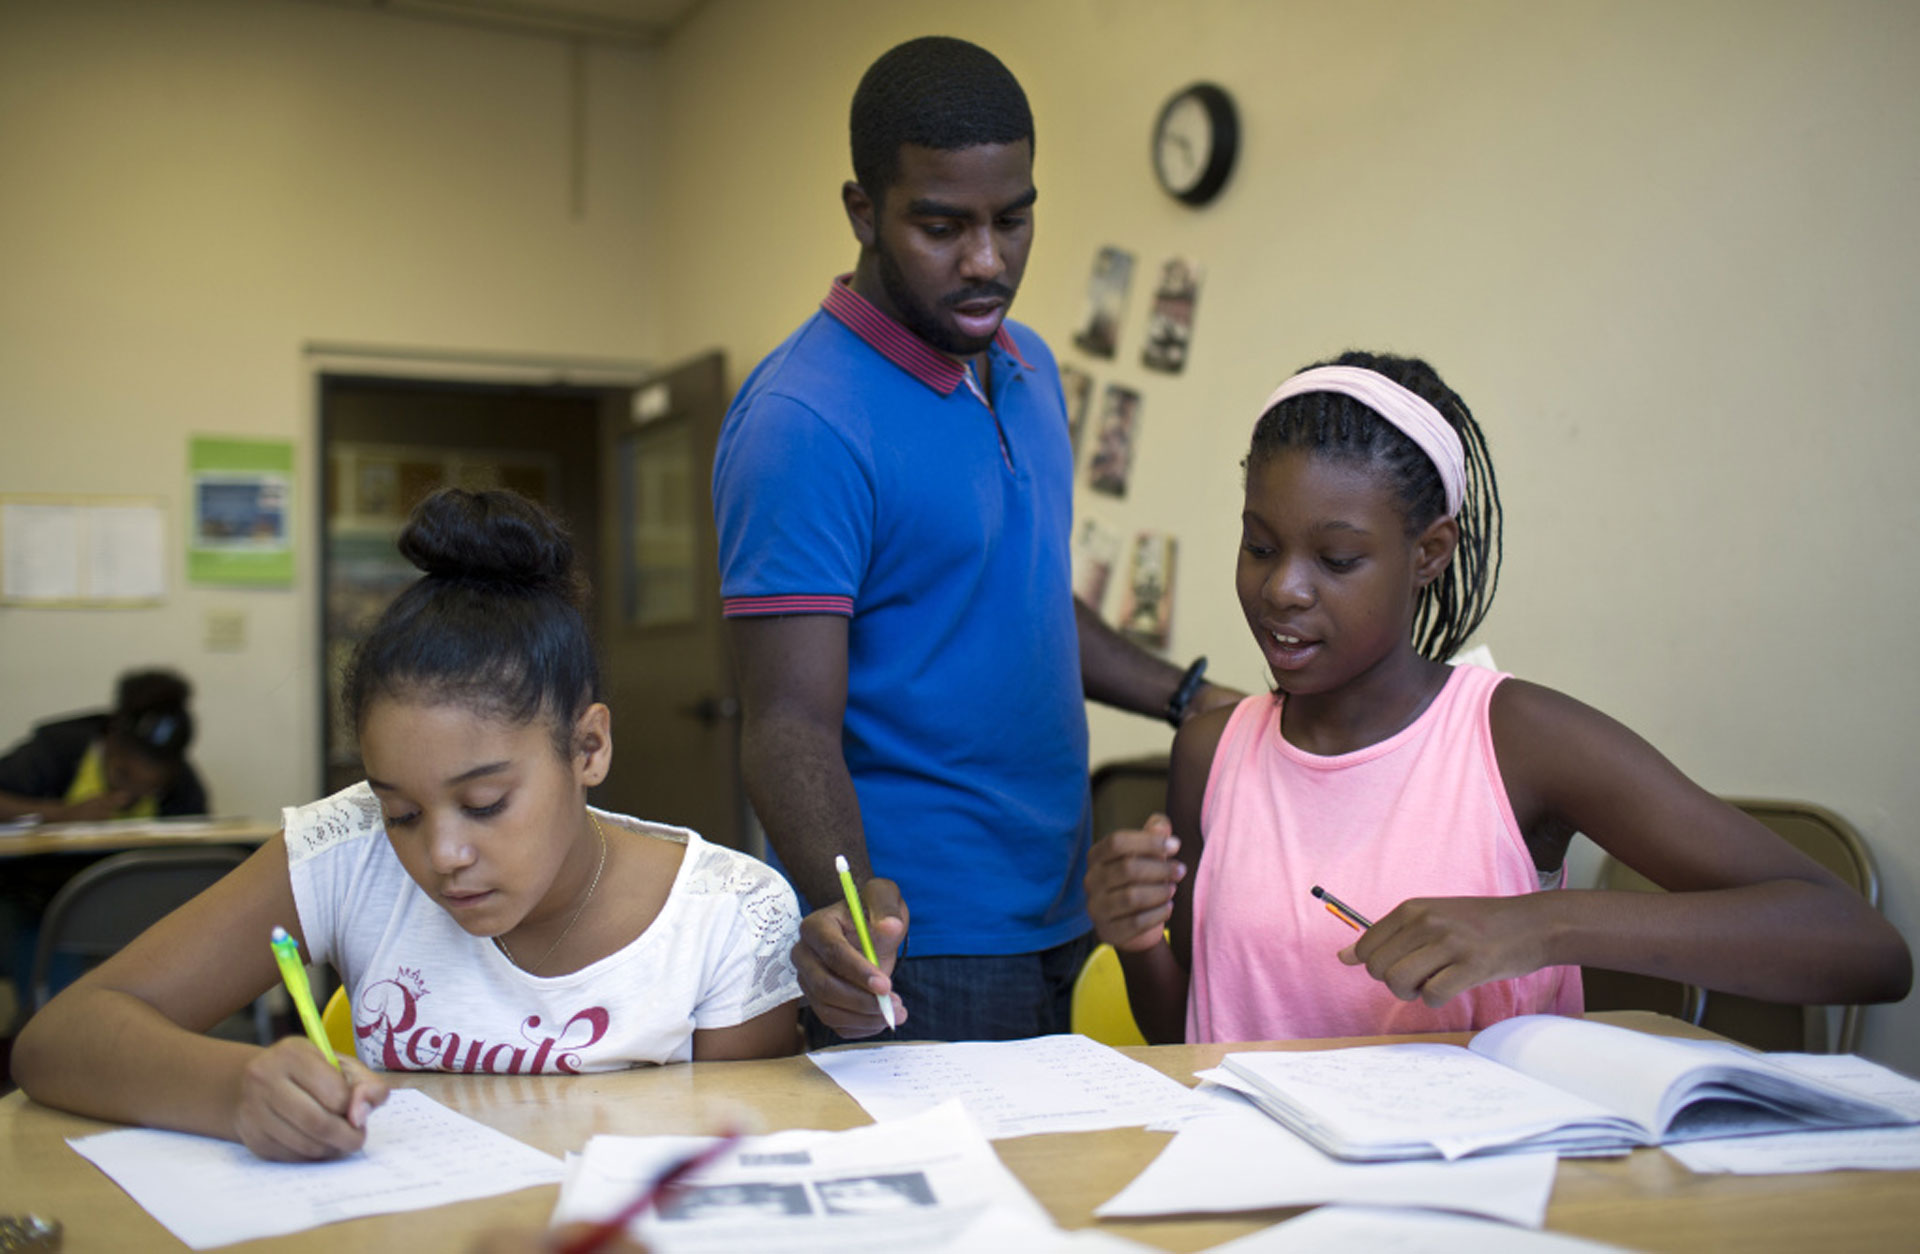 Teaching assistant Jonathan Curtiss checks the work of Alyse Wilson, 11 (L) and Kayla White, 12, during the fourth week of a pre-algebra class at the West Angeles Church Youth Center on Thursday afternoon, July 30, 2015.